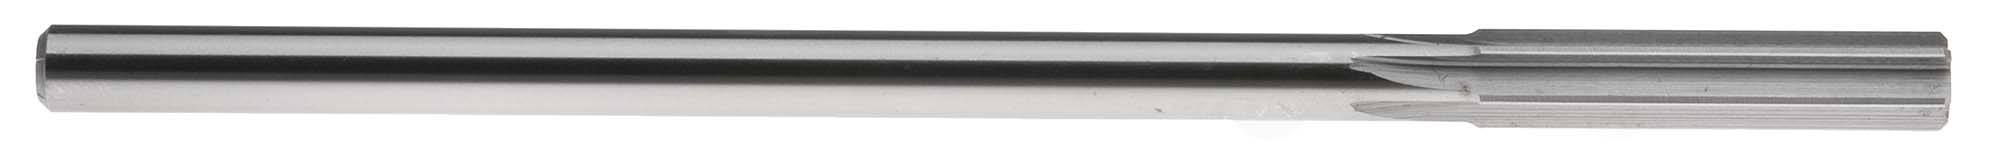 "19/64"" Straight Shank Chucking Reamer, Straight Flute, High Speed Steel"